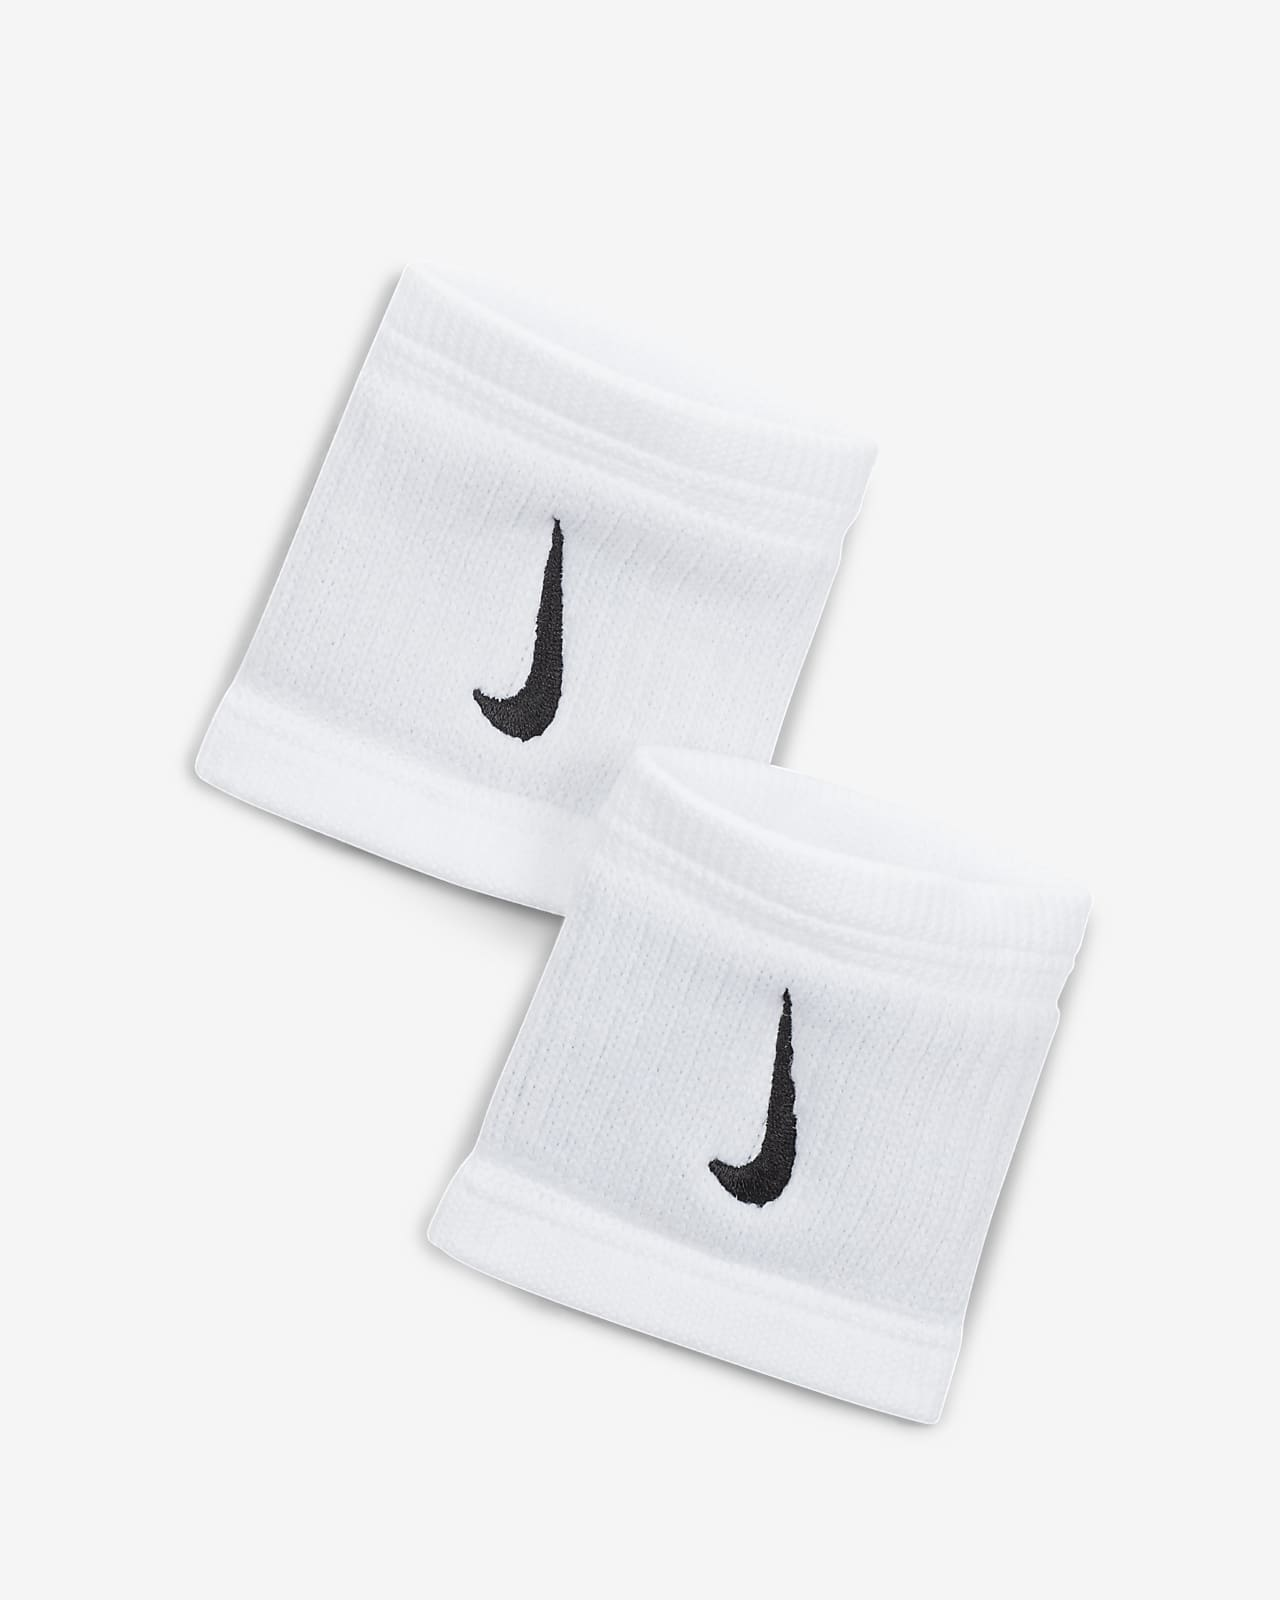 Nike Dri-FIT Reveal Tennis Wristbands